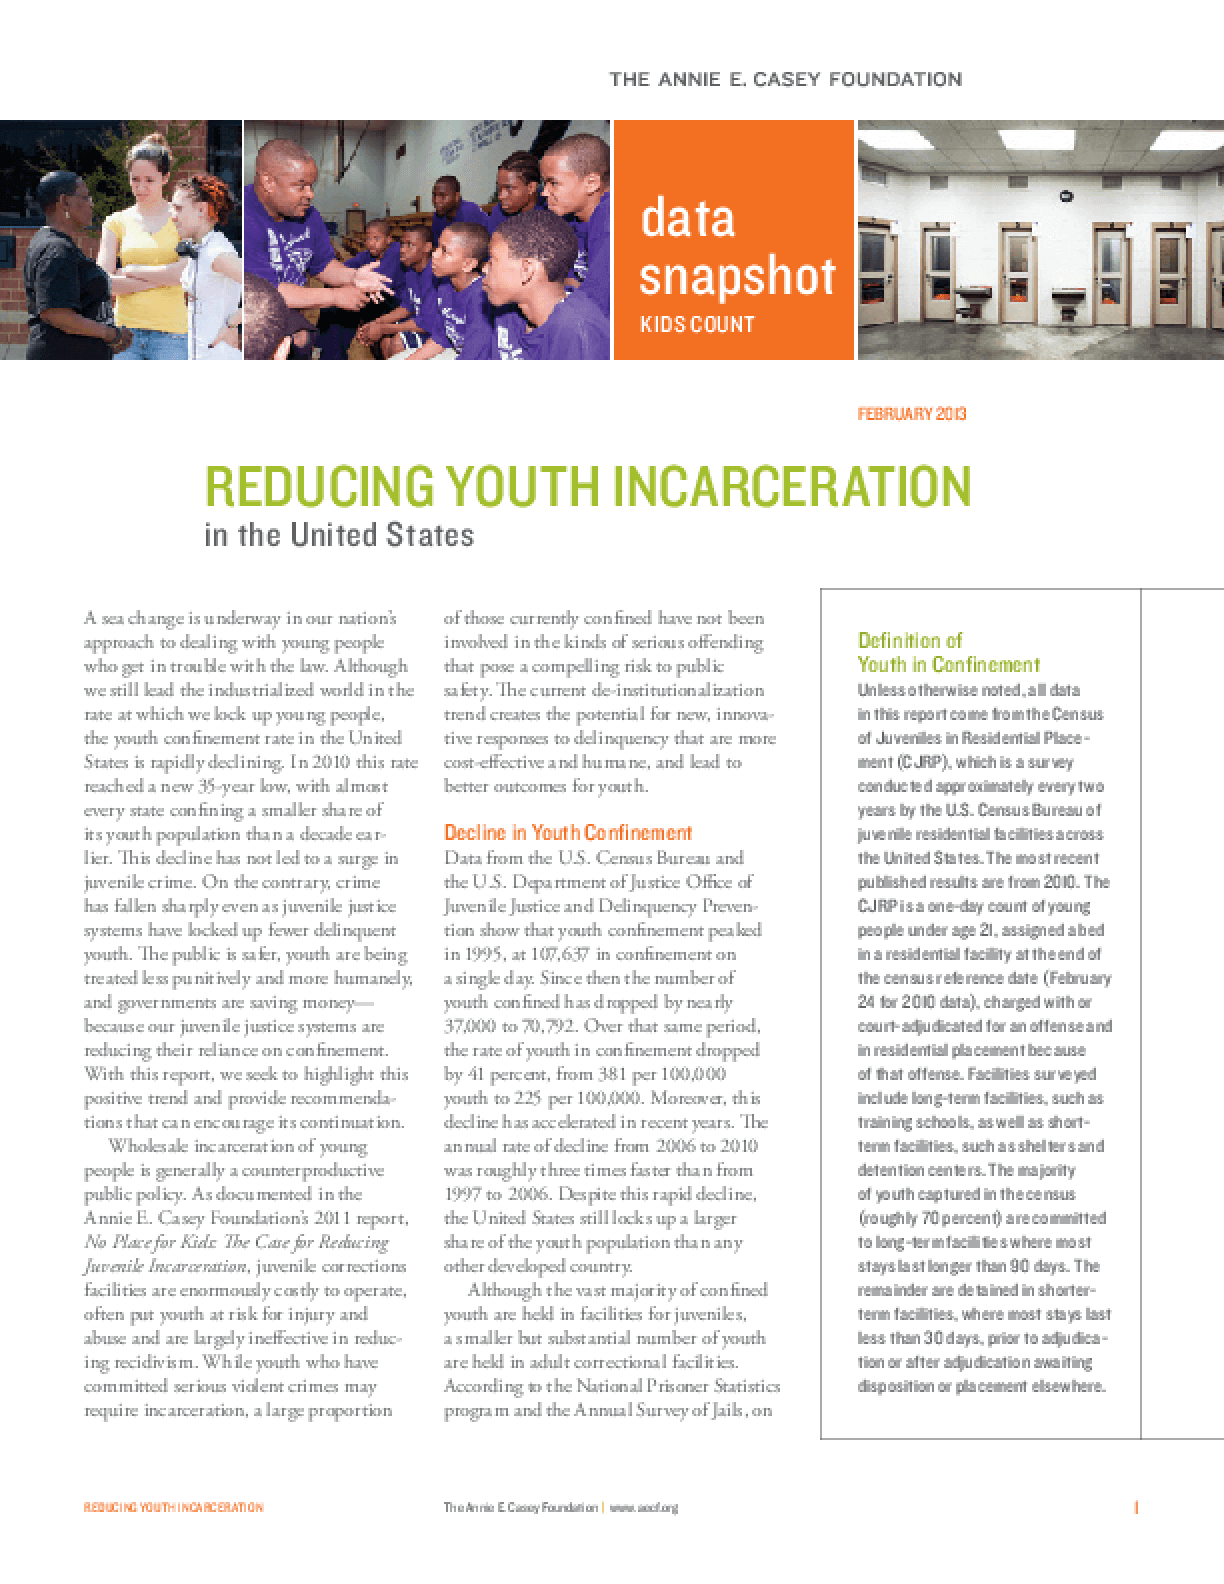 Reducing Youth Incarceration in the United States